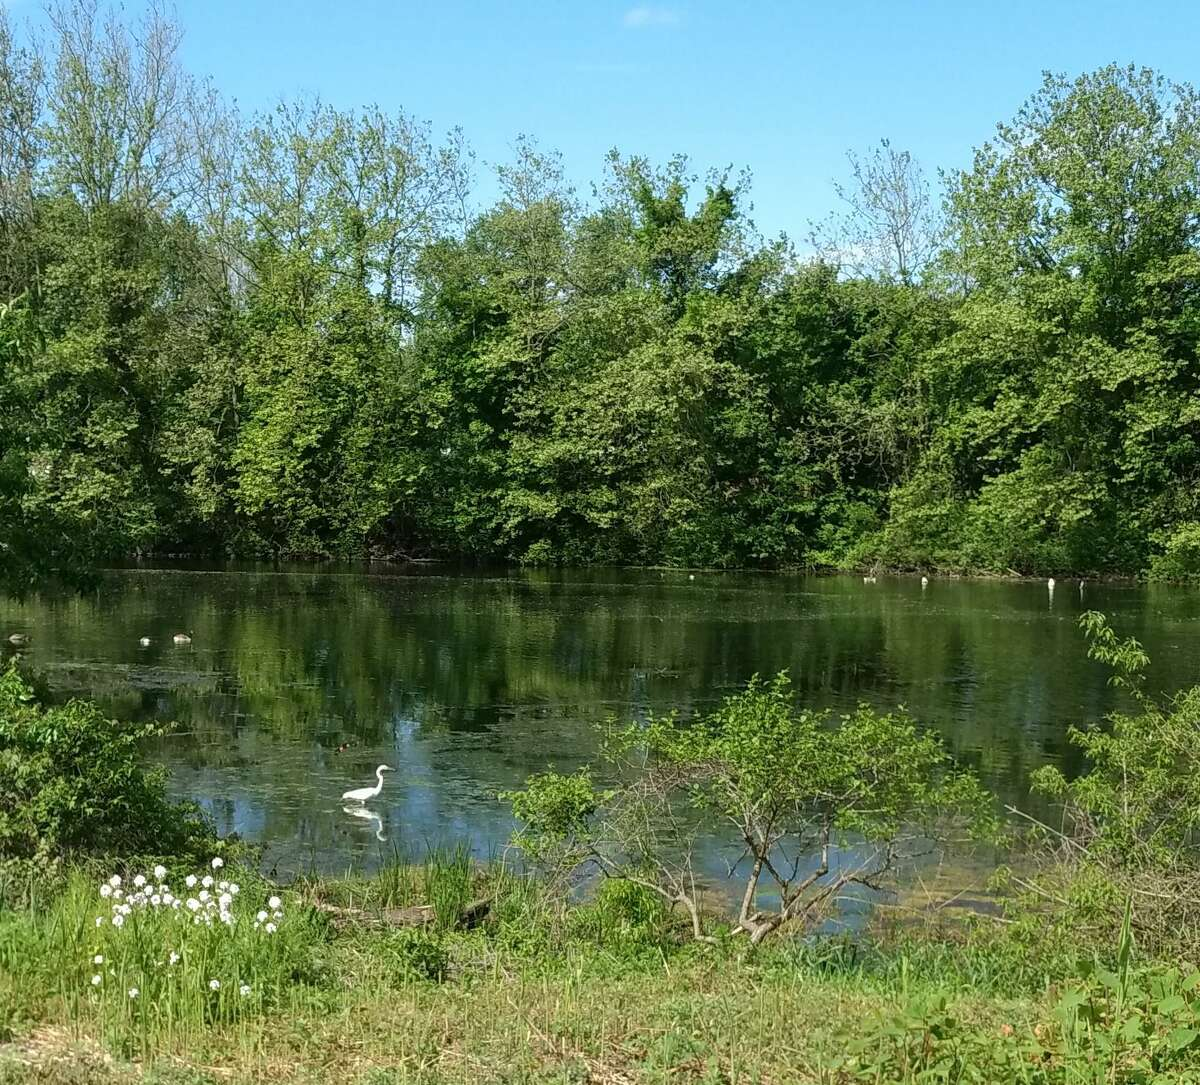 The WilWalk section of the Norwalk Valley River Trail will pass a pond at Broad Street in Norwalk. Oct. 2020